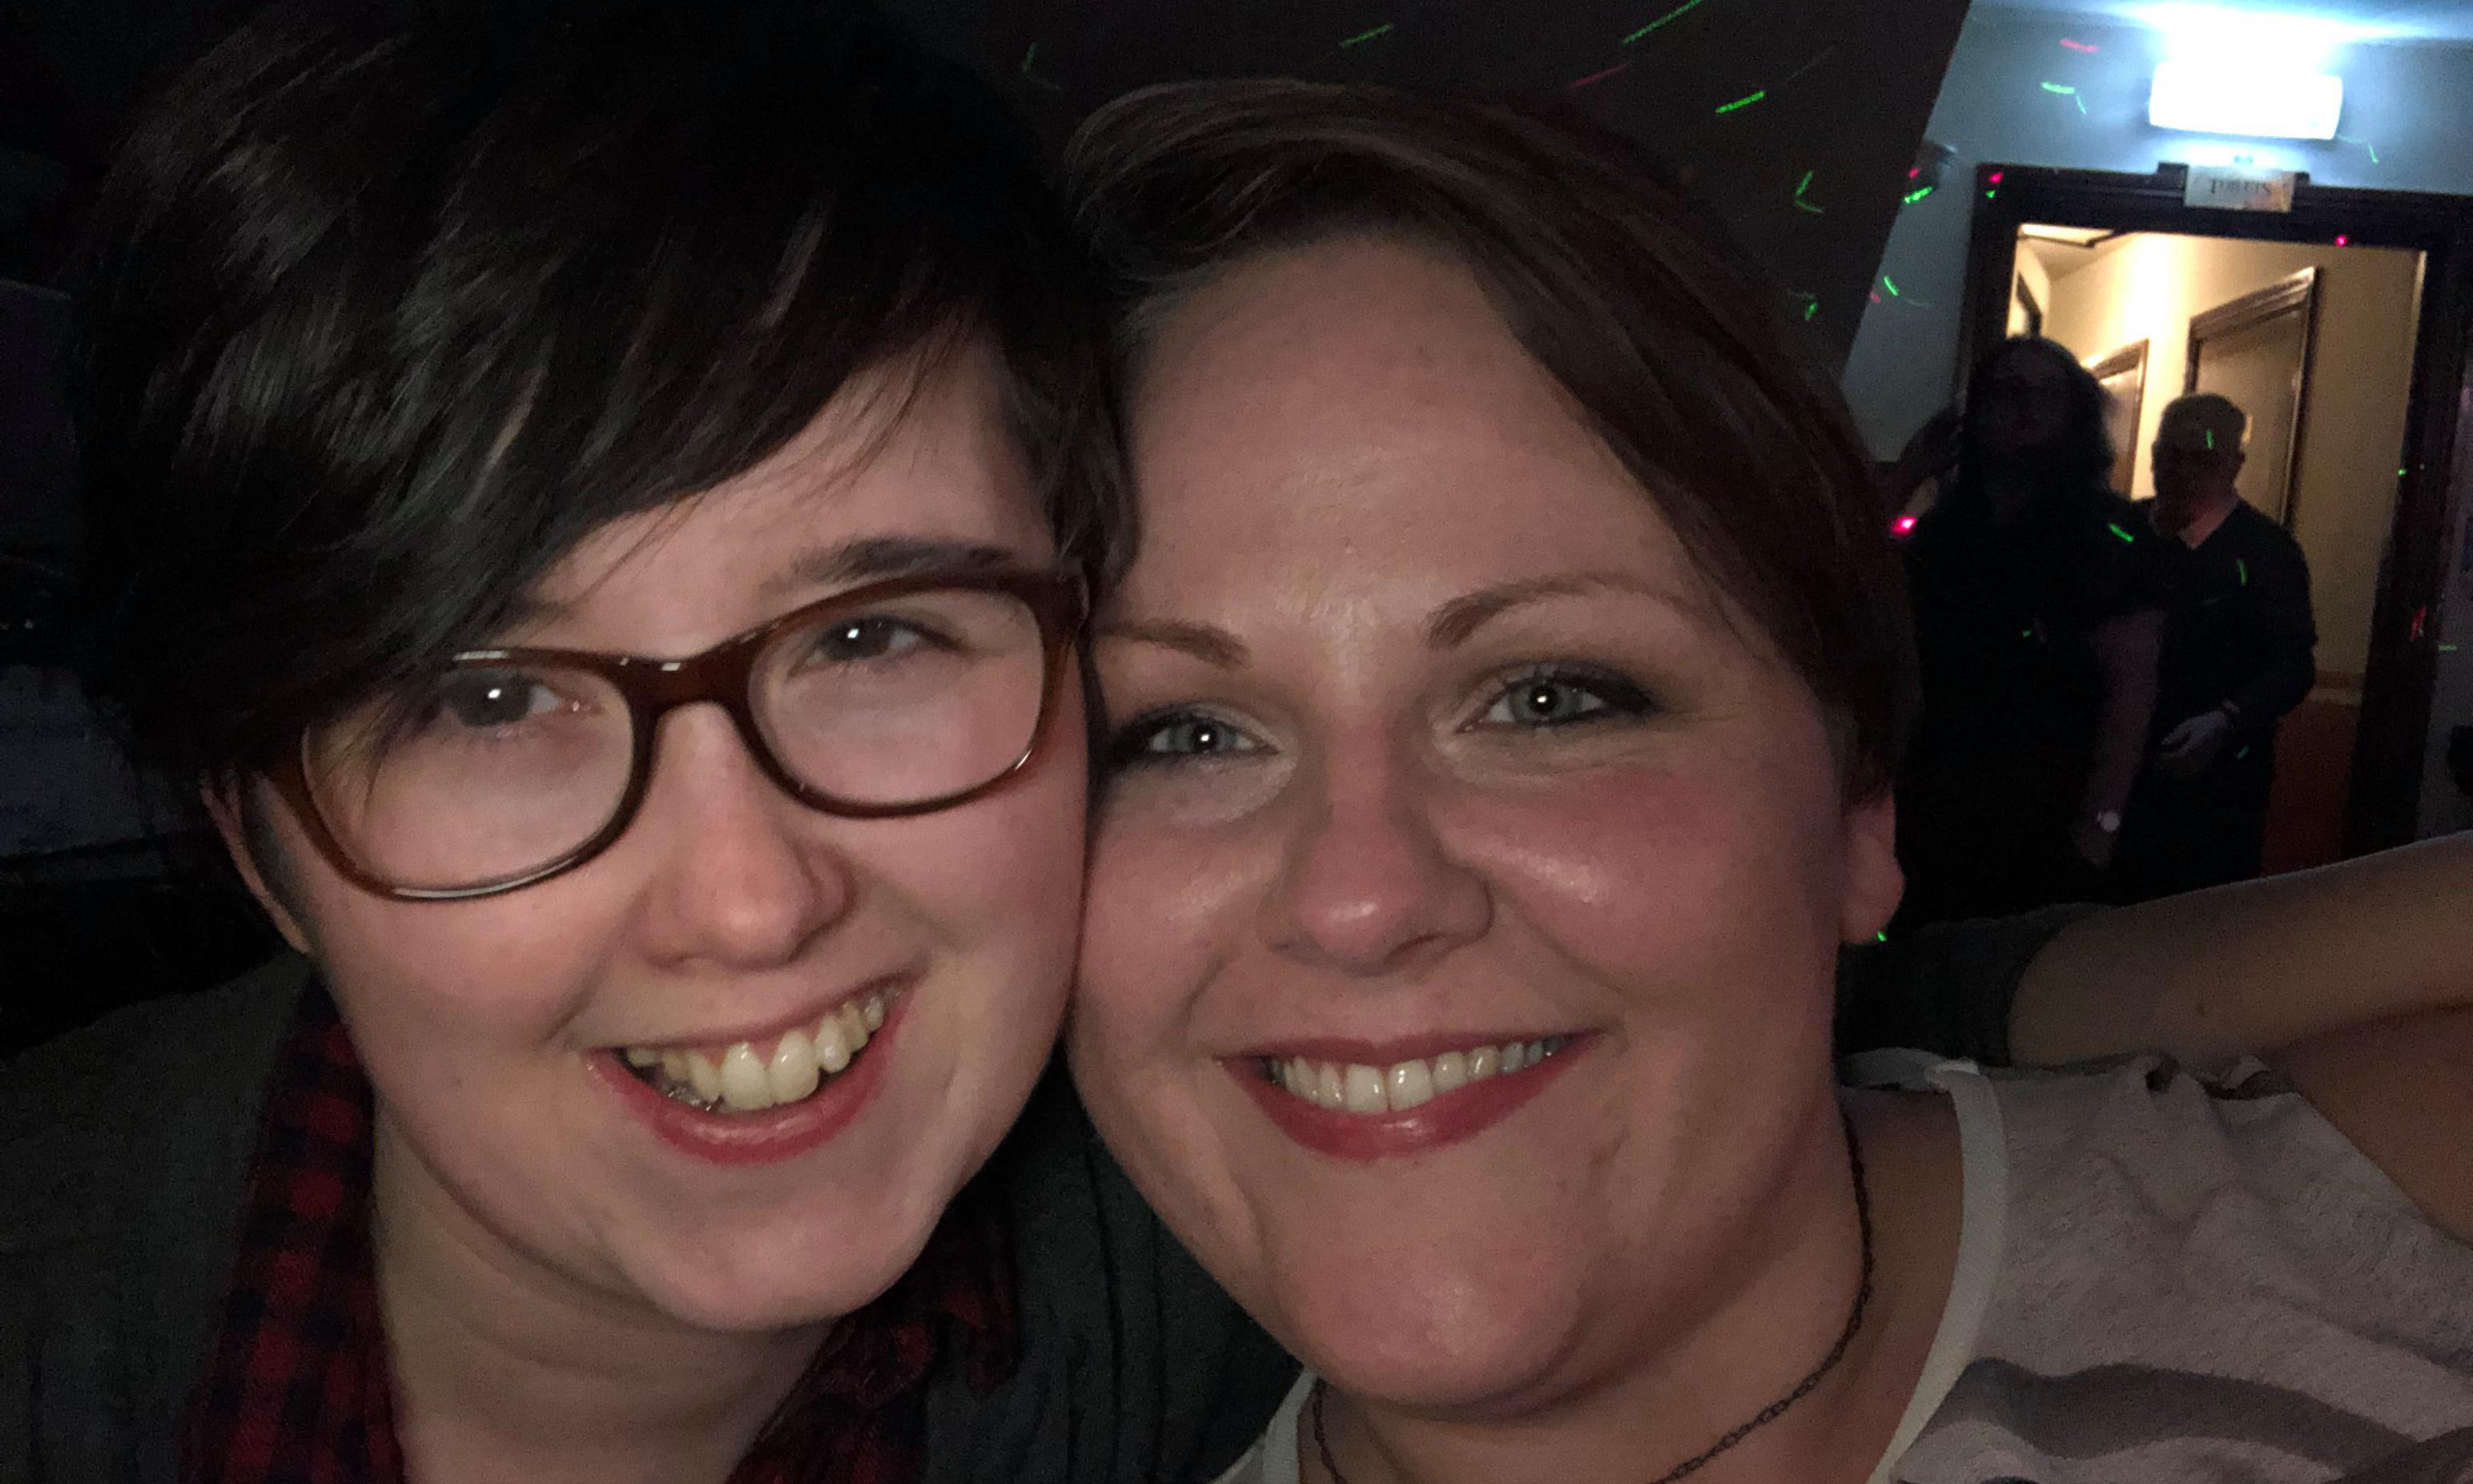 My partner, Lyra Mckee, would have been overjoyed about the same-sex marriage bill